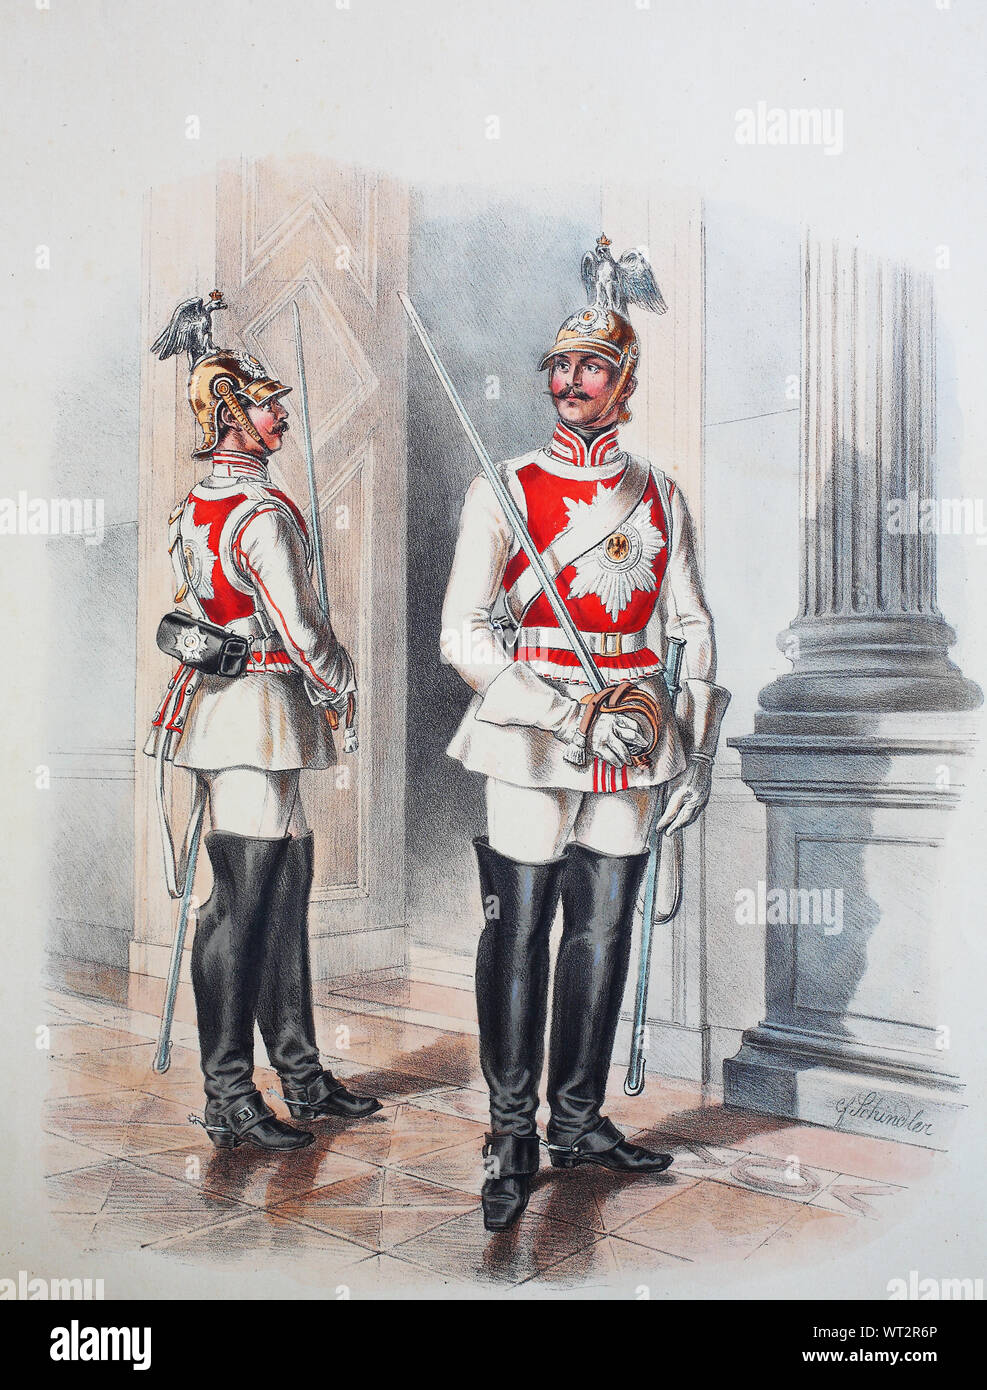 Royal Prussian Army, Guards Corps, Gardes du Corps, personal bodyguard of the king of Prussia, Preußens Heer, preussische Garde, Garde du Corps in Galauniform, Digital improved reproduction of an illustration from the 19th century Stock Photo